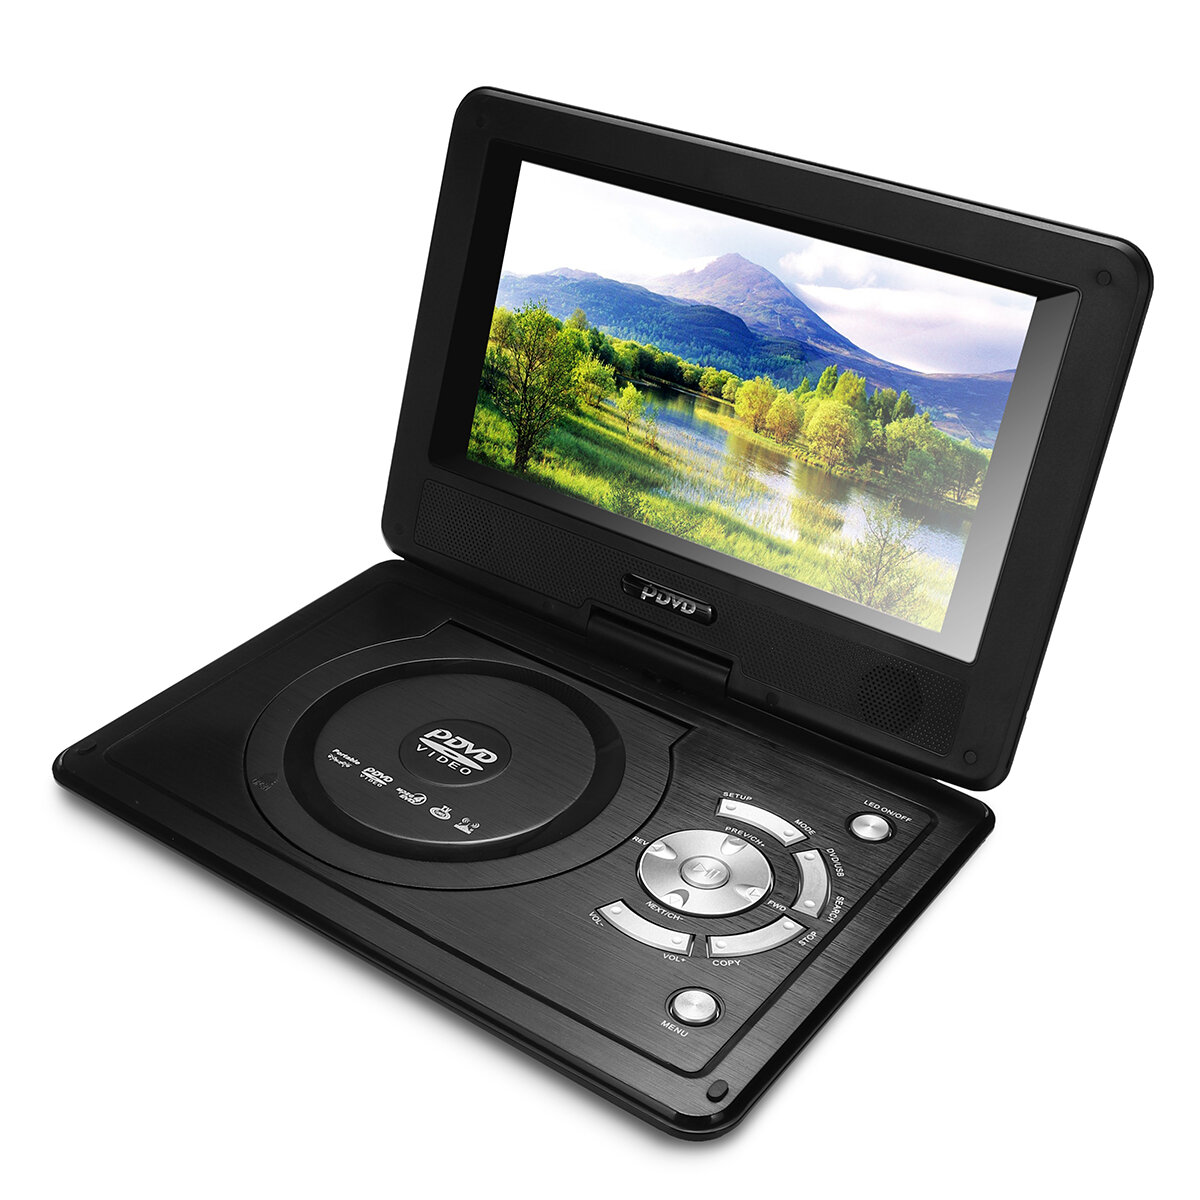 12 4 inch 270 rotation screen portable car dvd player support game tv rechargeable sale. Black Bedroom Furniture Sets. Home Design Ideas